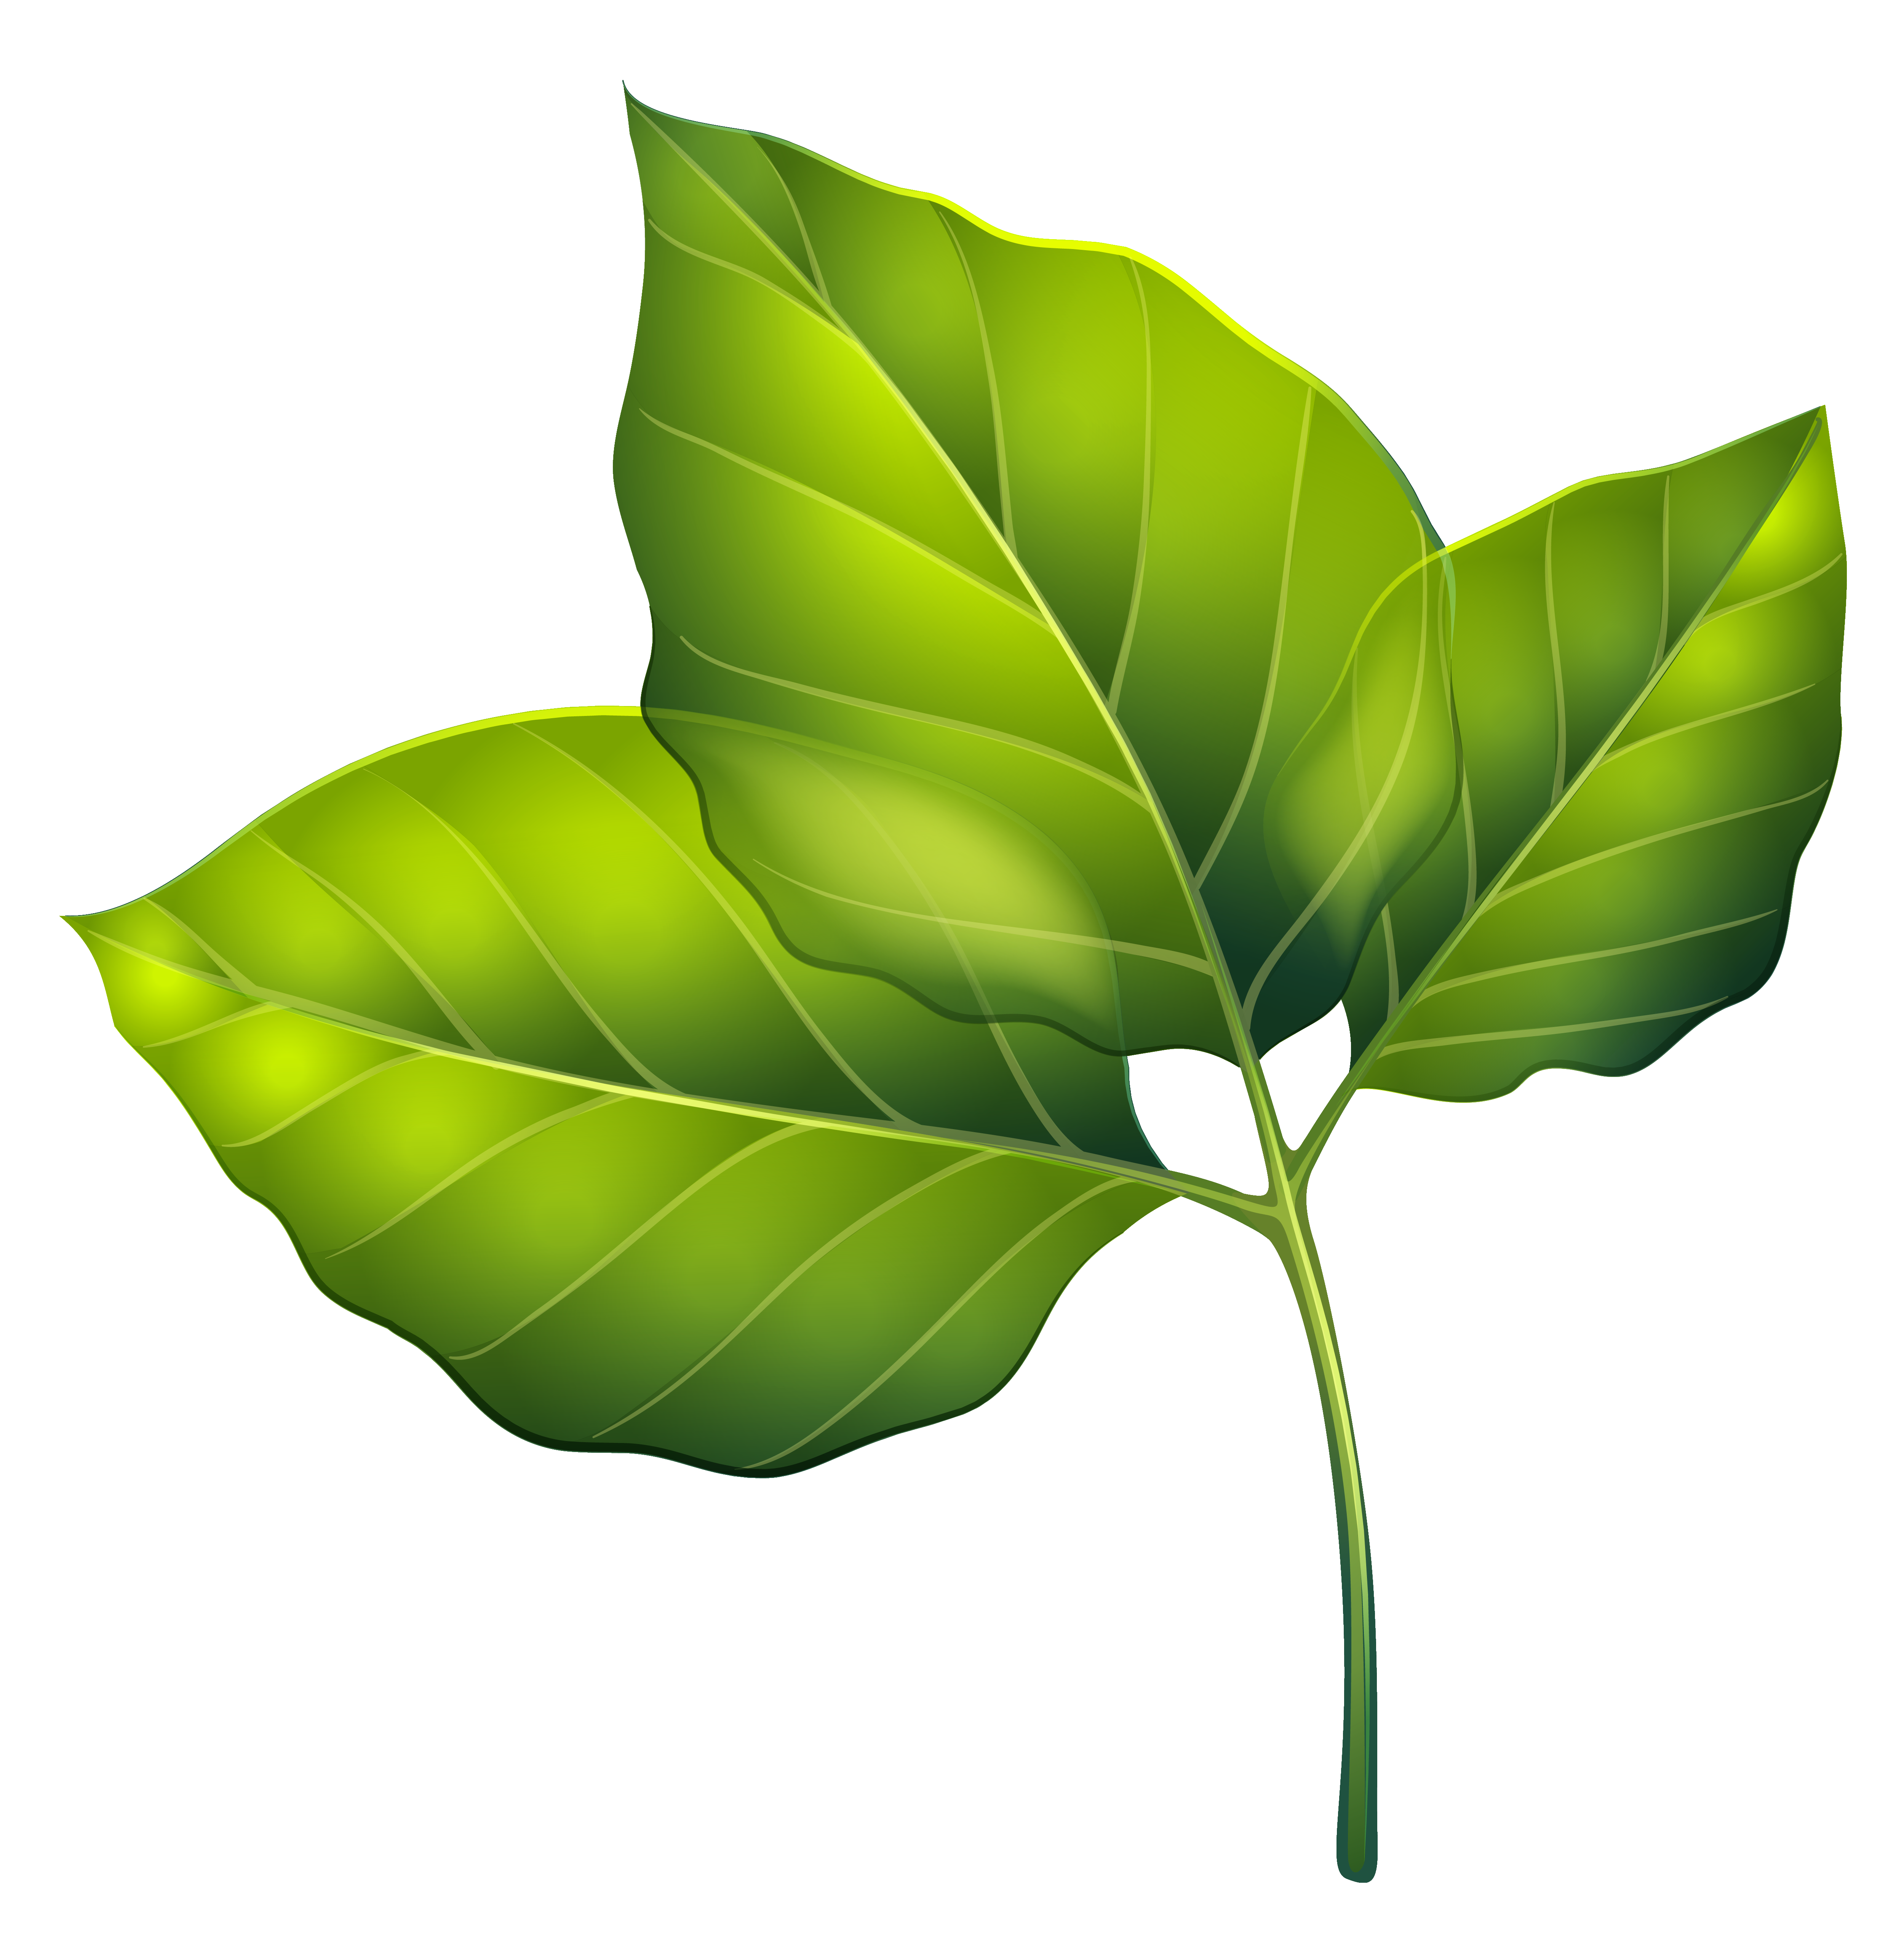 Flower leaves clipart graphic freeuse stock Three Green Leaves PNG Clipart Image | Gallery Yopriceville - High ... graphic freeuse stock